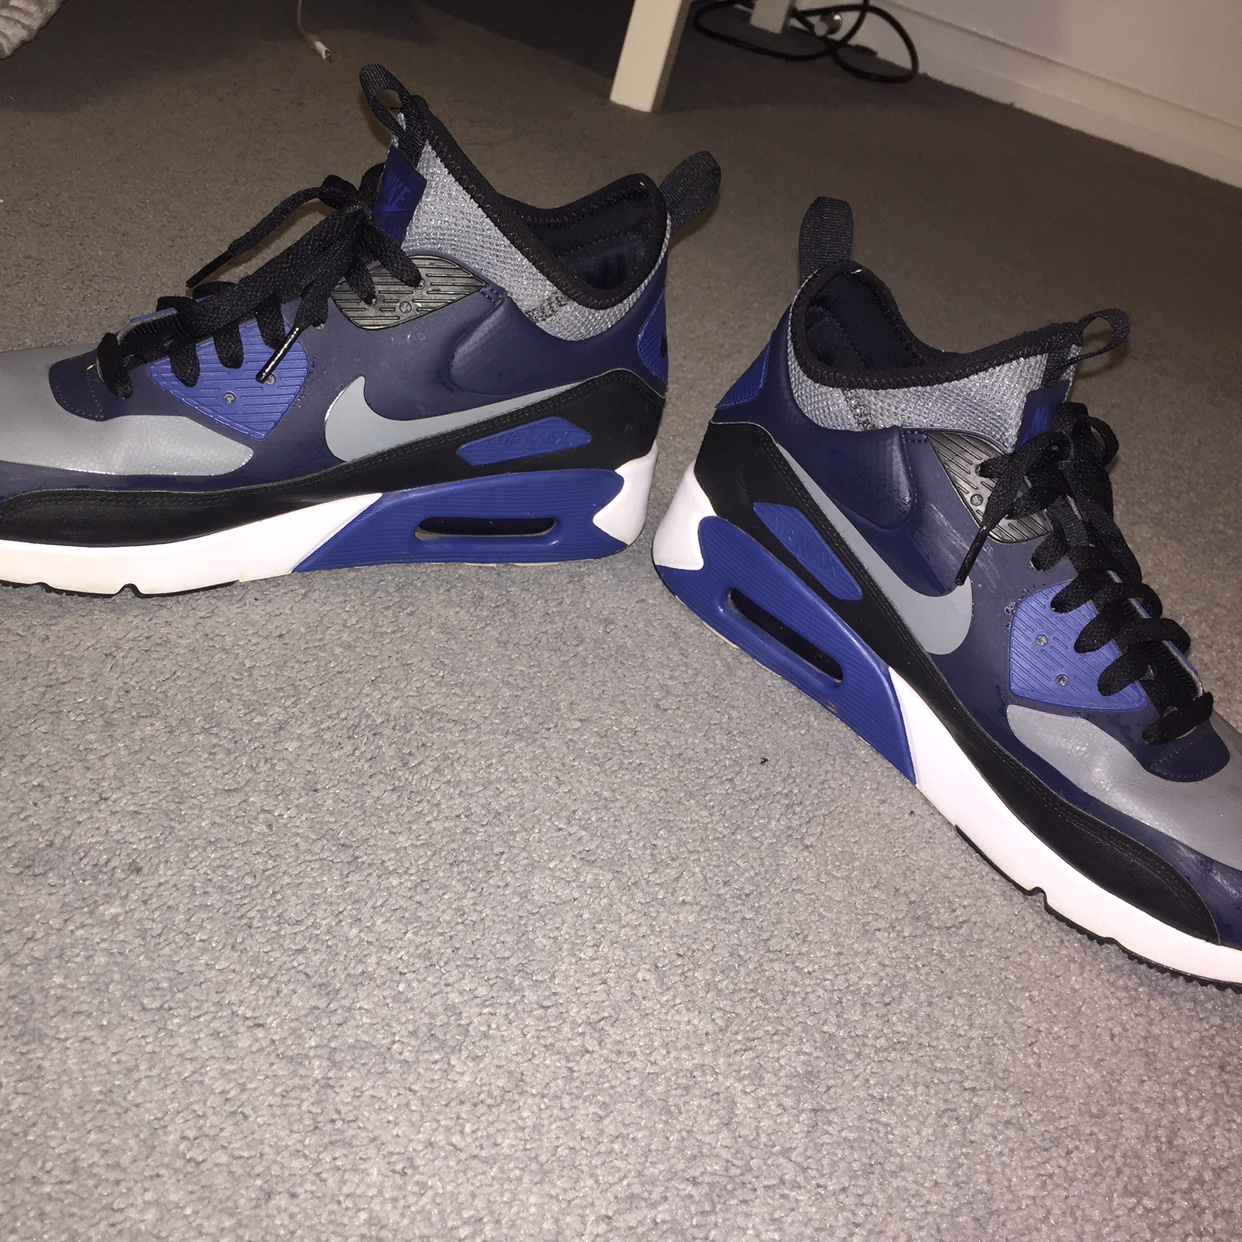 Nike air max 90 ultra mid winter blue Worn once Depop